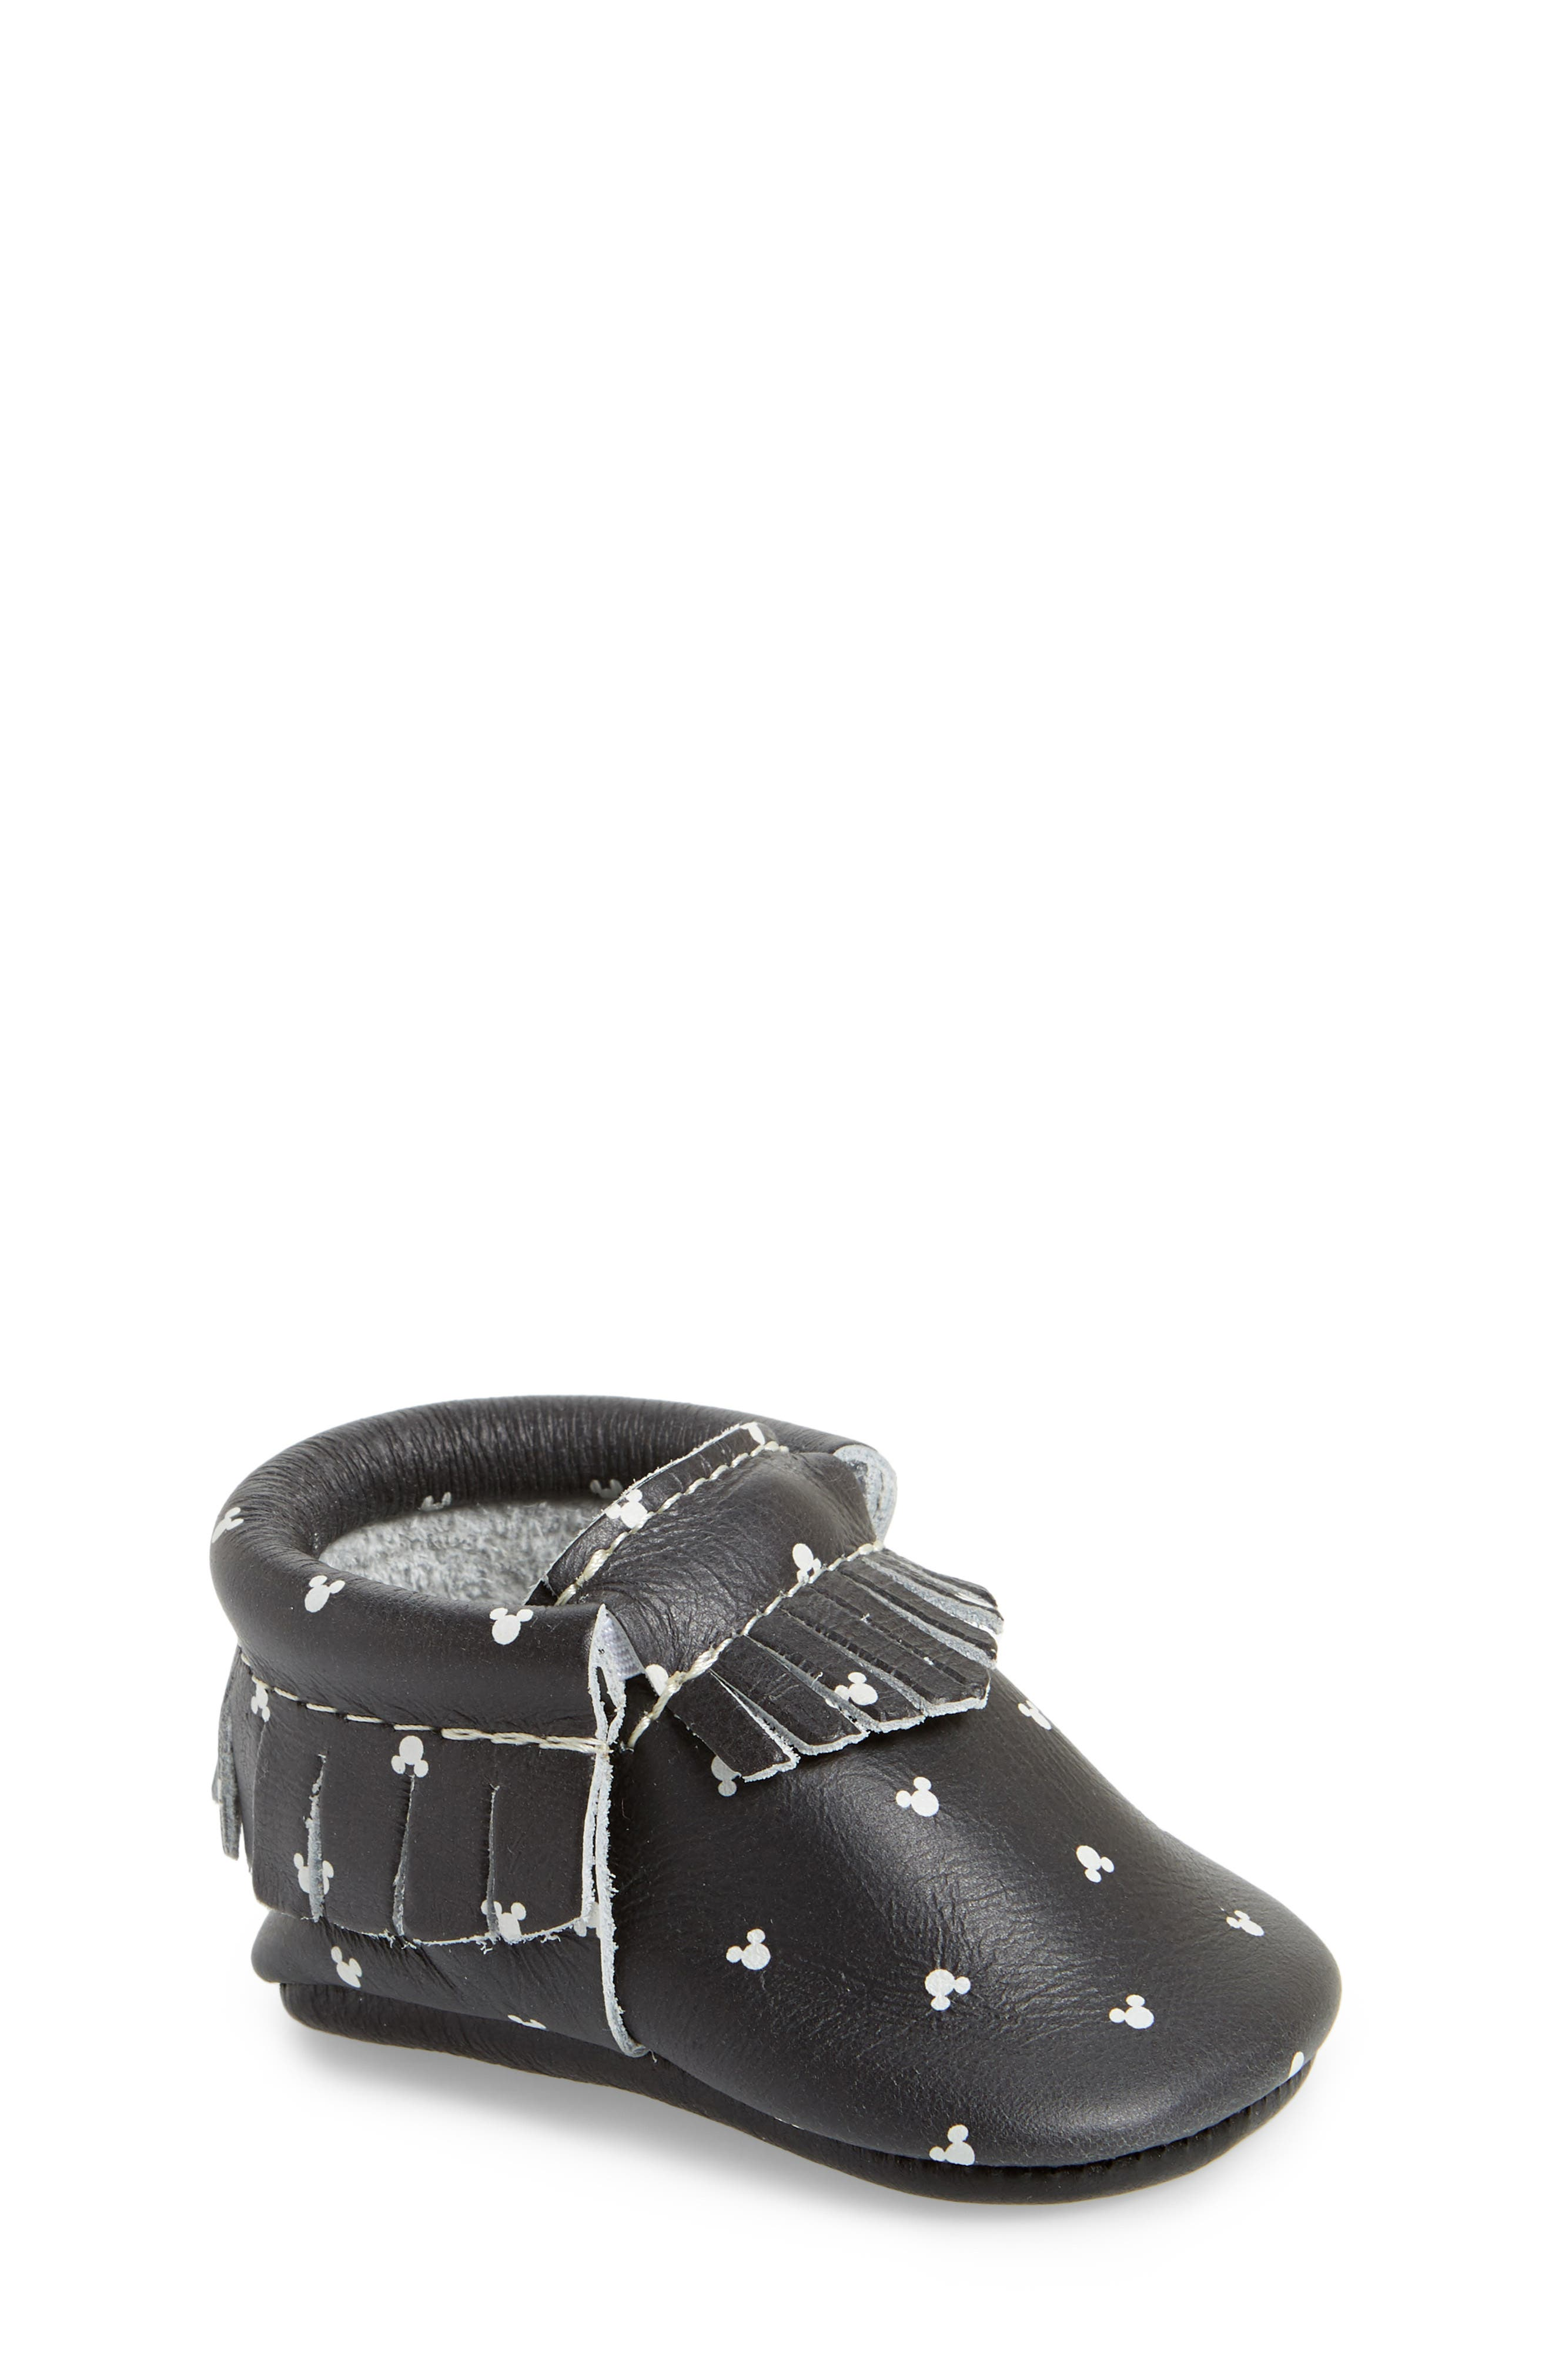 x Disney<sup>®</sup> Mouse Ears Print Moccasin,                             Main thumbnail 1, color,                             BLACK LEATHER